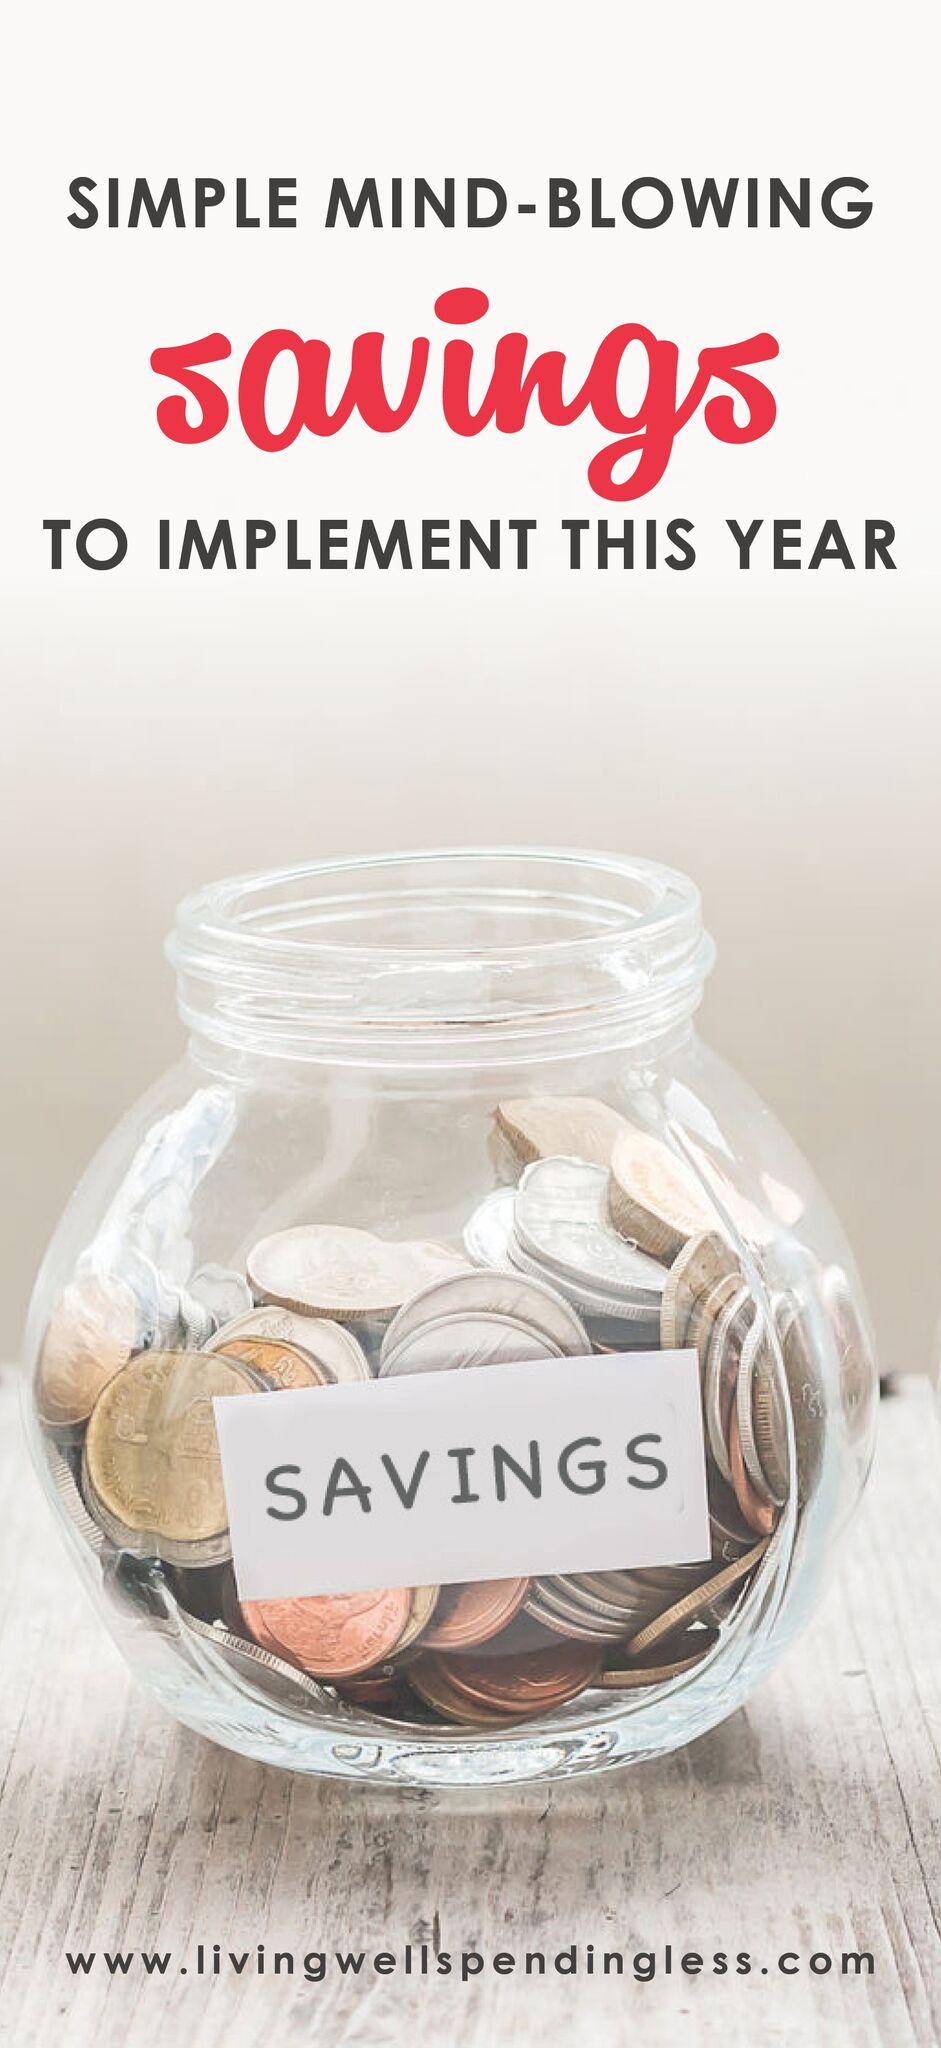 Simple Tricks to Save Money | 12 Easy Ways to Save Money